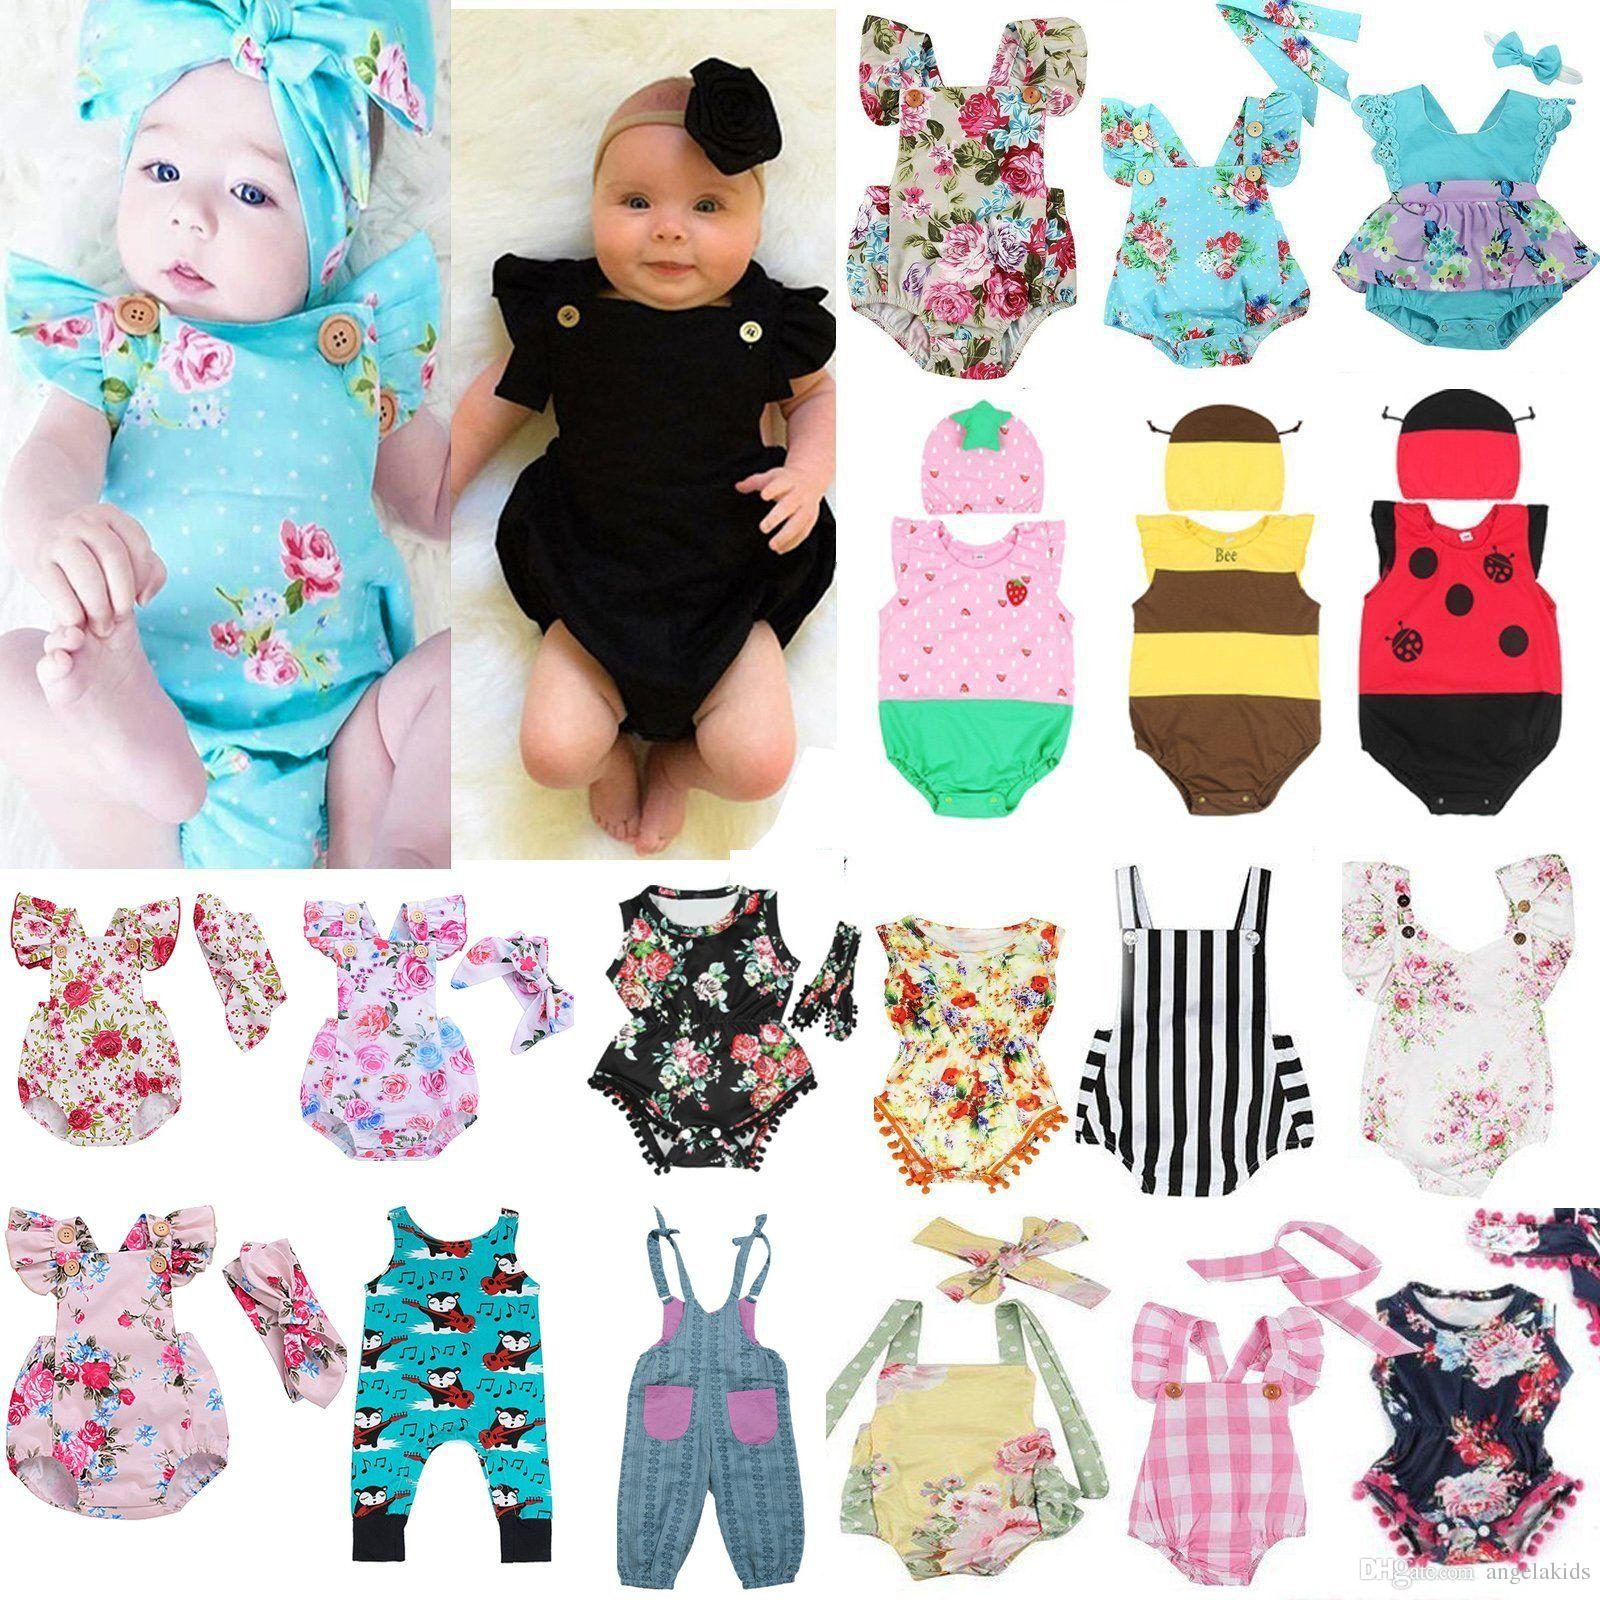 f49c5211c 2019 Newborn Baby Boy Clothes Kids Girls Bodysuit Tutu Romper ...